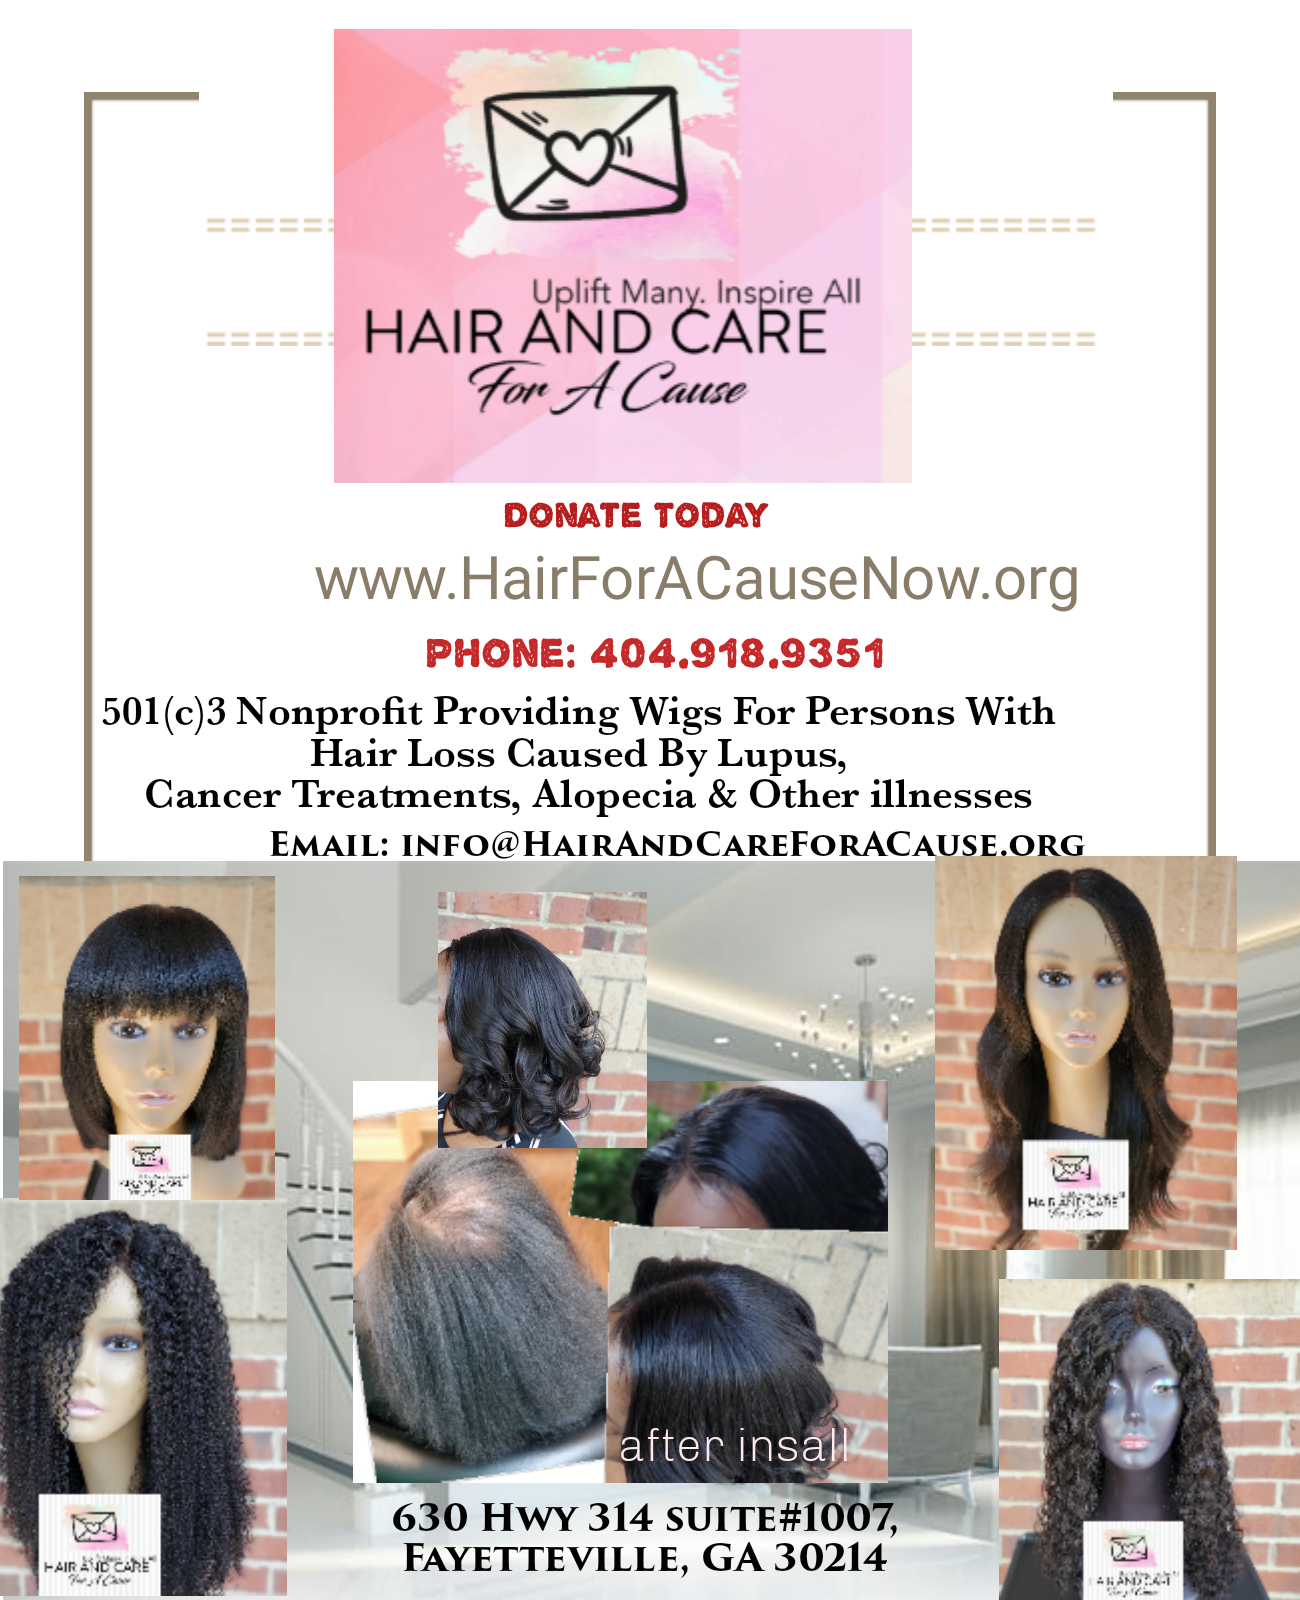 Hair And care For A Cause Charity: Donate Today Donate to help A person with hair loss caused by Lupus, Cancer, Alopecia and other hair loss conditions